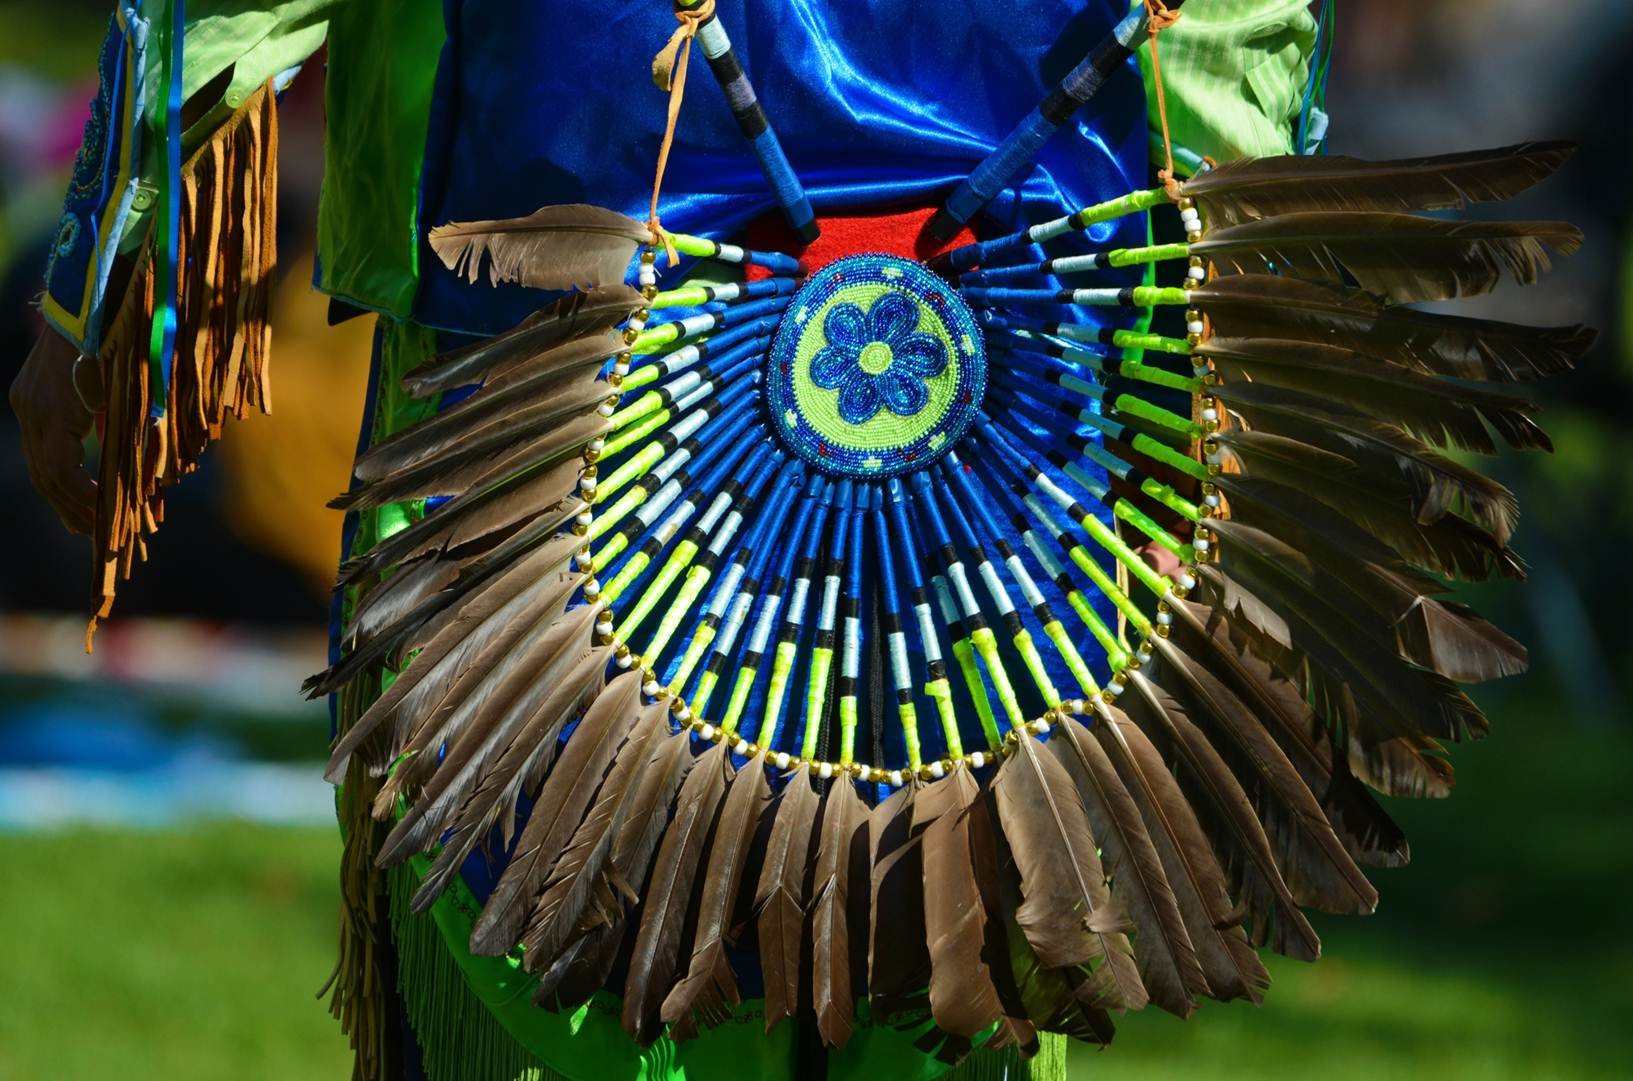 Blue and yellow regalia